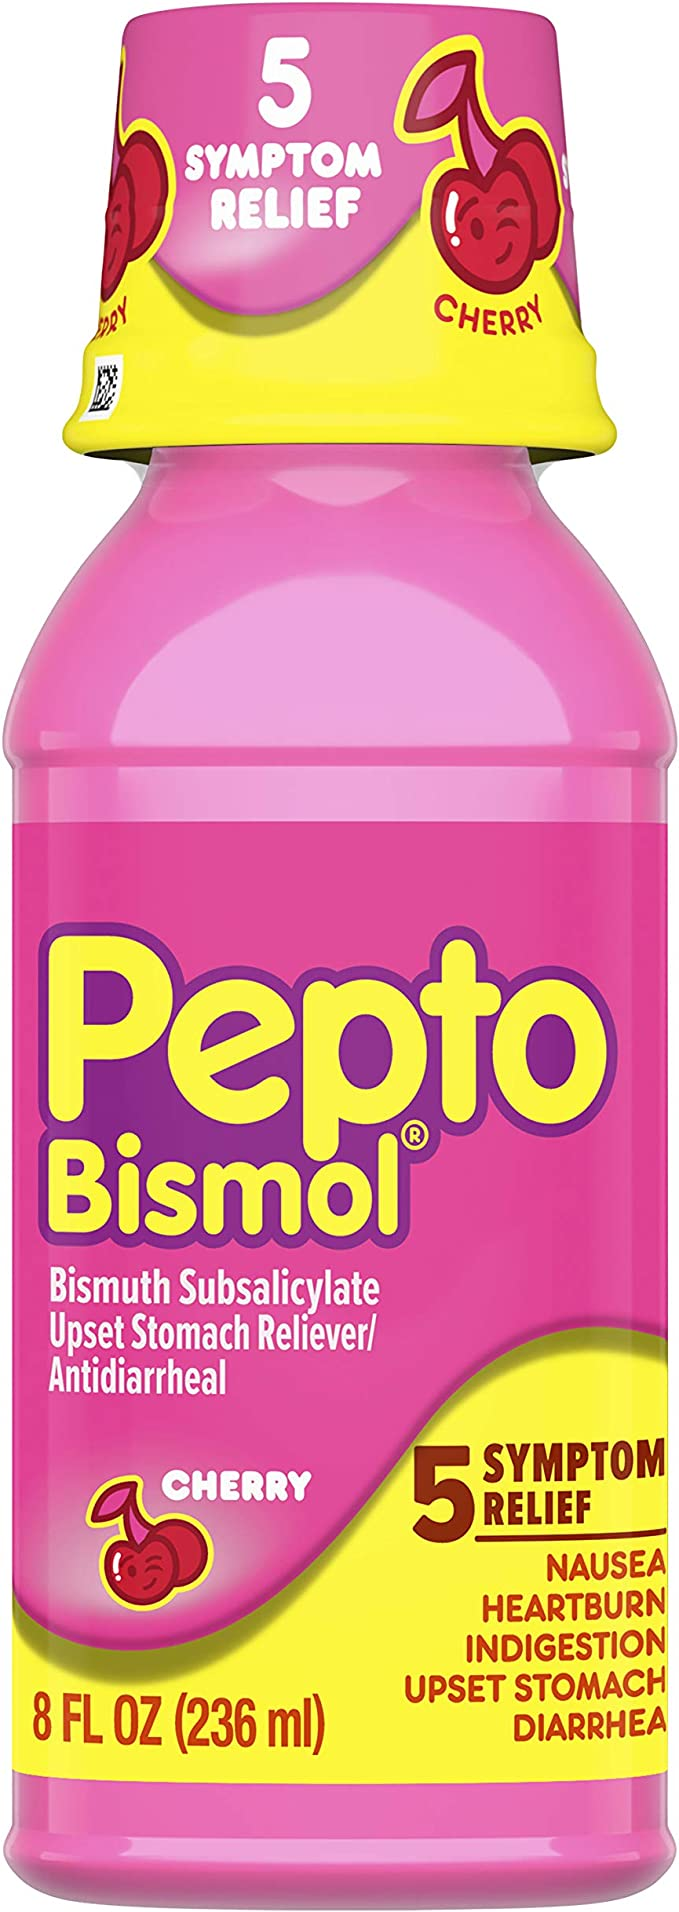 Amazon Com Pepto Bismol Liquid For Nausea Heartburn Indigestion Upset Stomach And Diarrhea Relief Cherry Flavor 8 Oz Health Personal Care